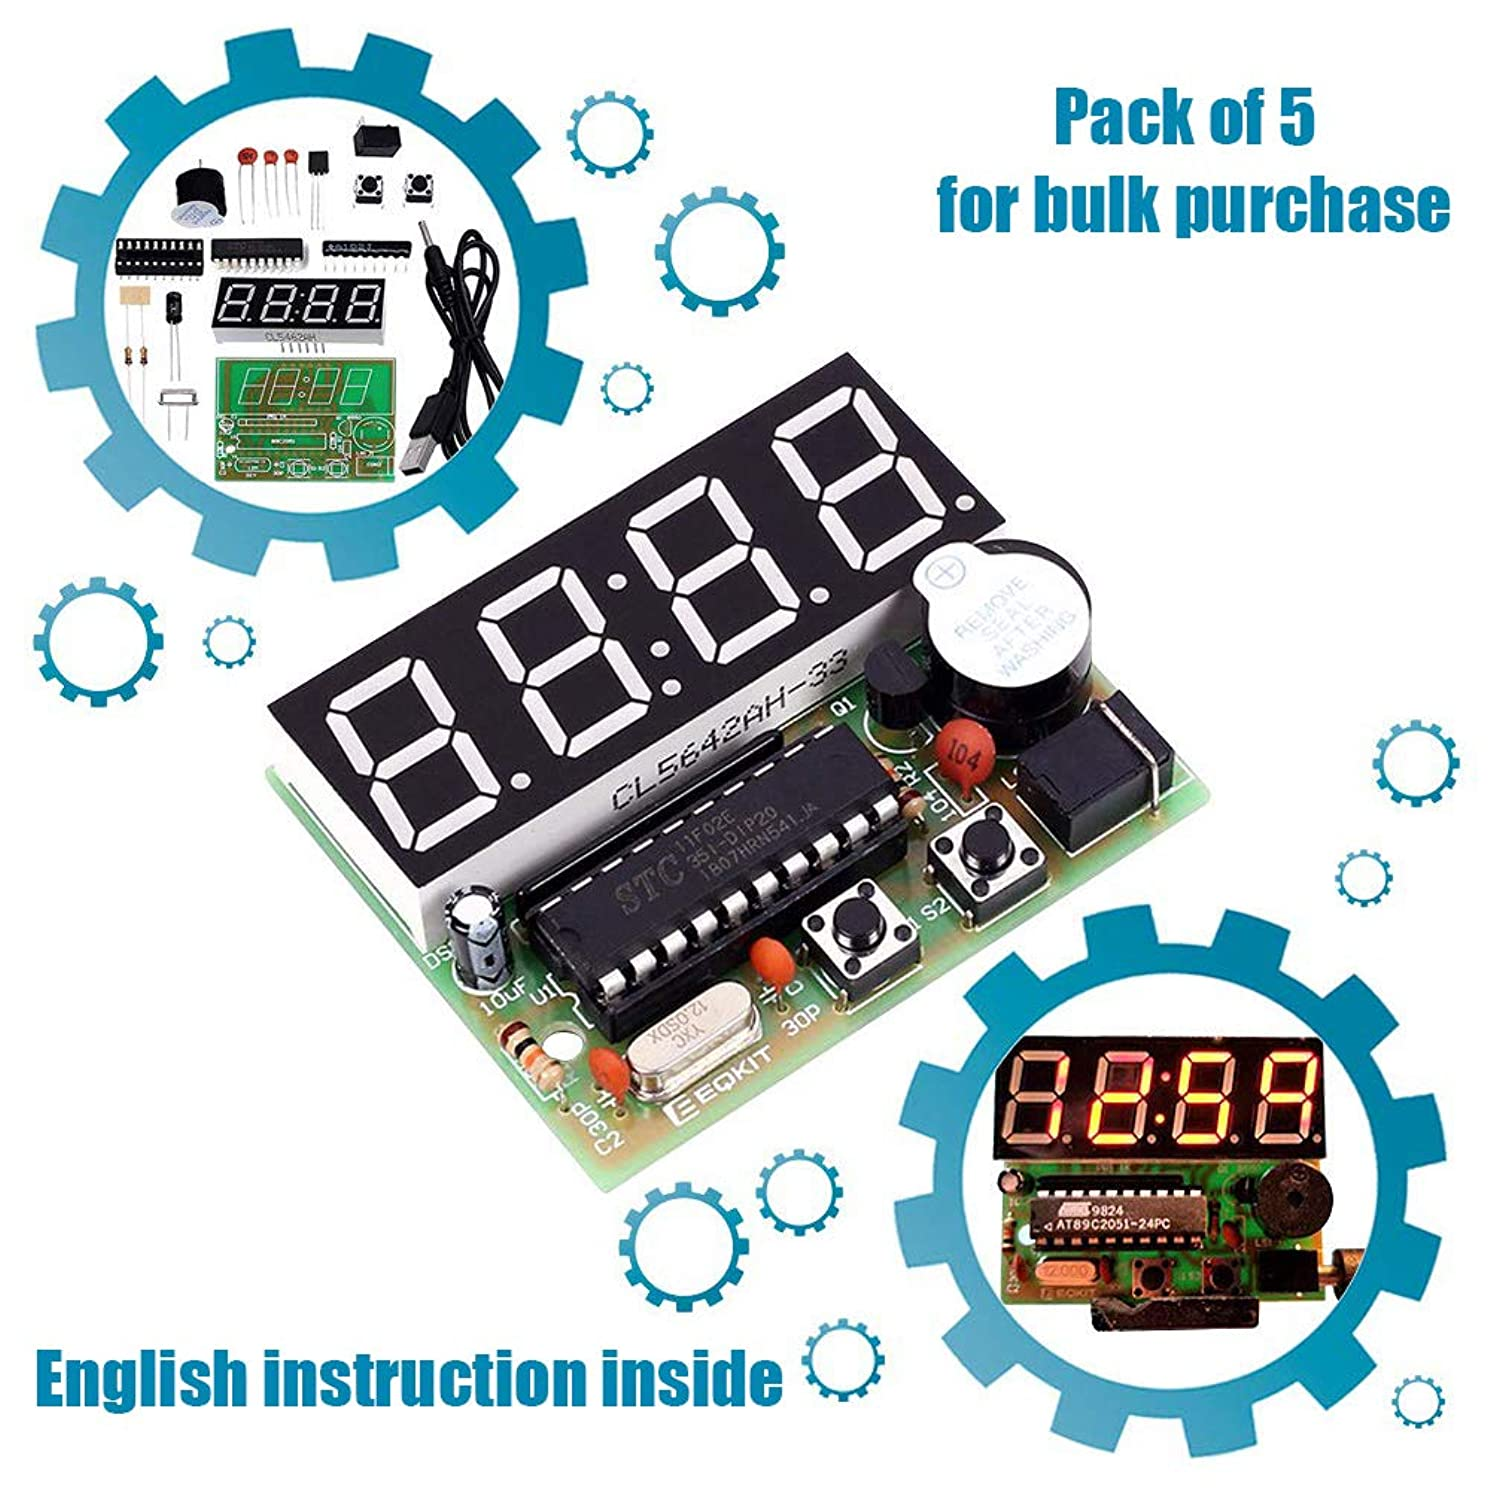 IS ICStation 4Bits Digital Clock DIY Electronic Assemble Soldering Kit AT89C2051 FR-4 PCB Board Solder Tool (Pack of 5)